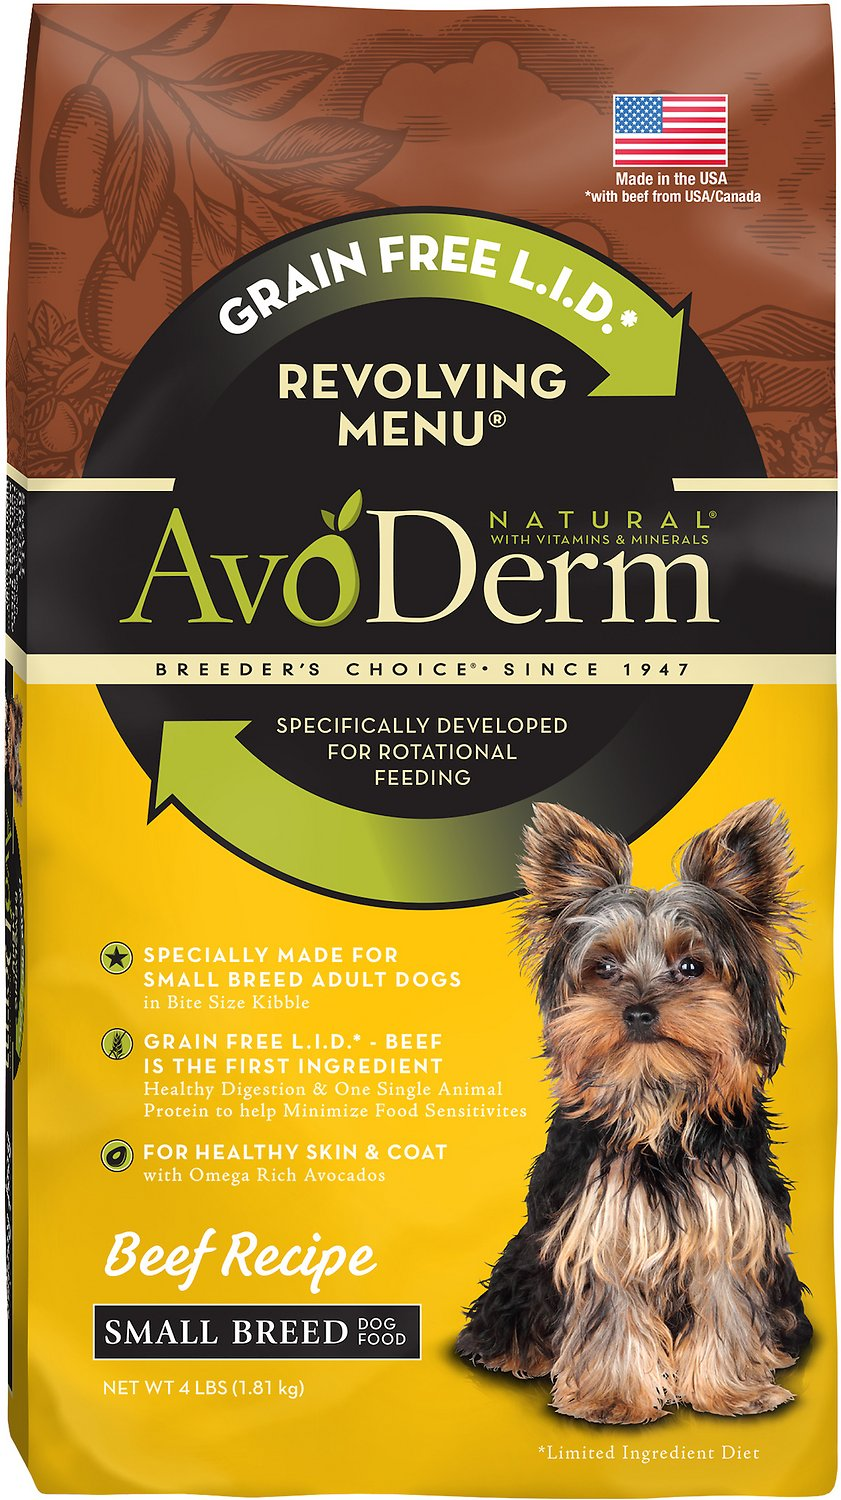 AvoDerm Natural Grain-Free Revolving Menu Small Breed Beef Recipe Adult Dry Dog Food, 4-lb bag (Weights: 4.0 pounds) Image